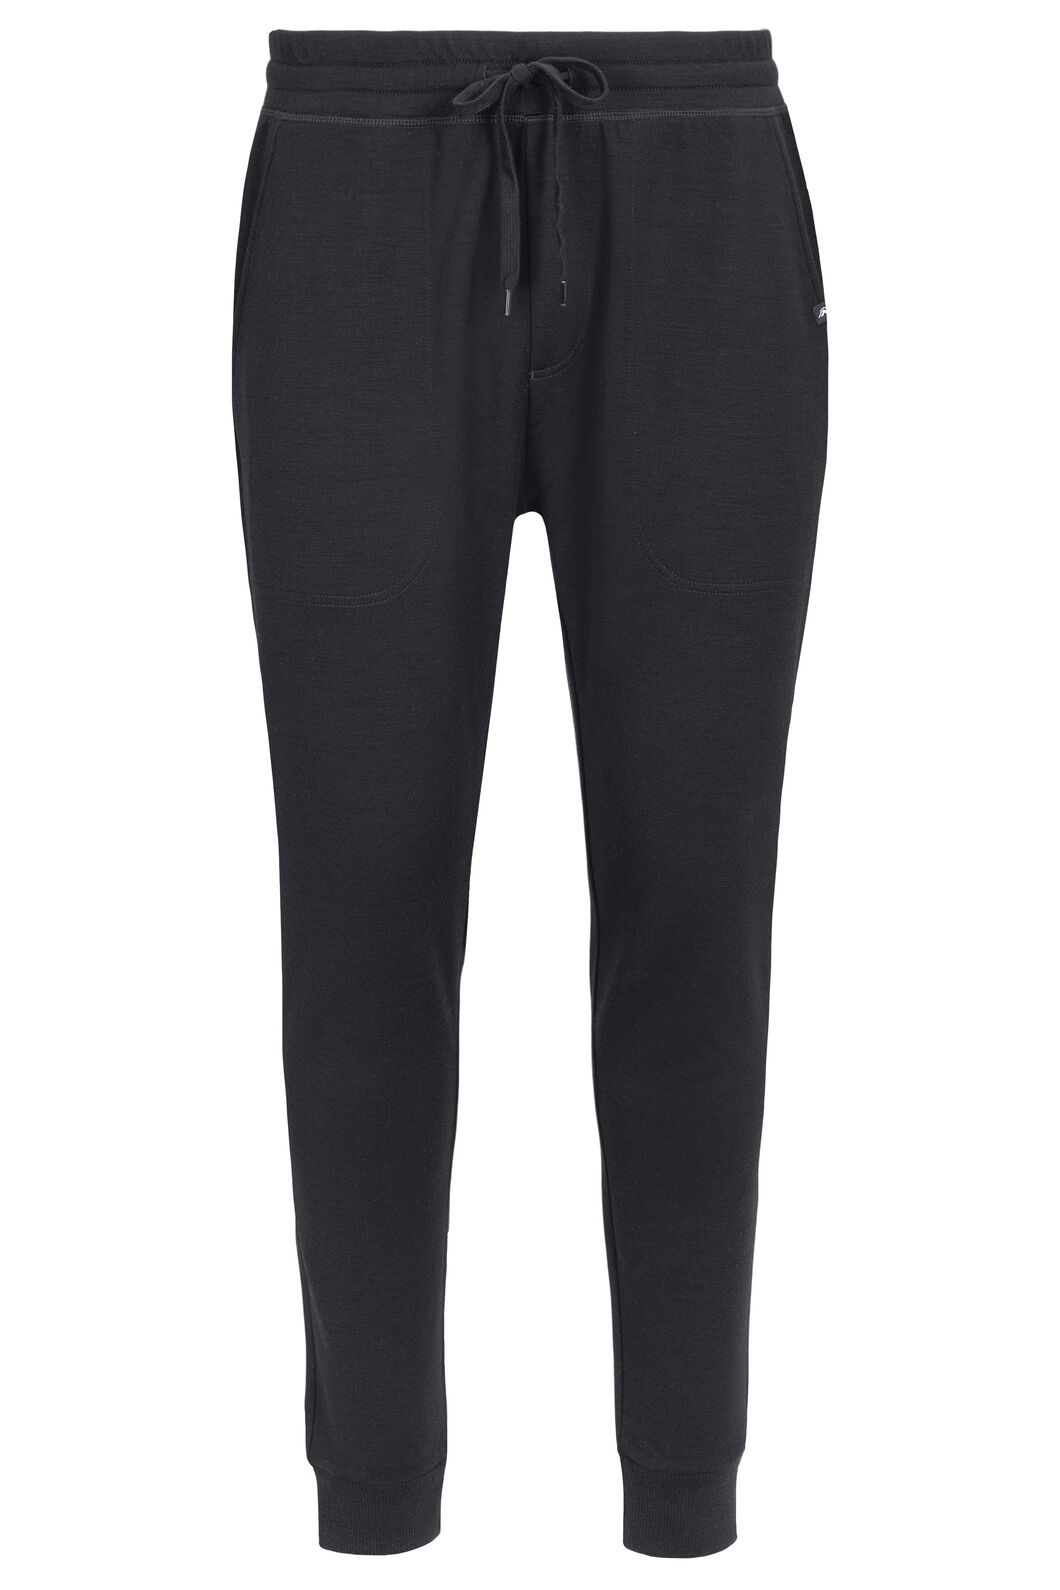 Macpac Merino Blend Track Pants — Men's, Black, hi-res